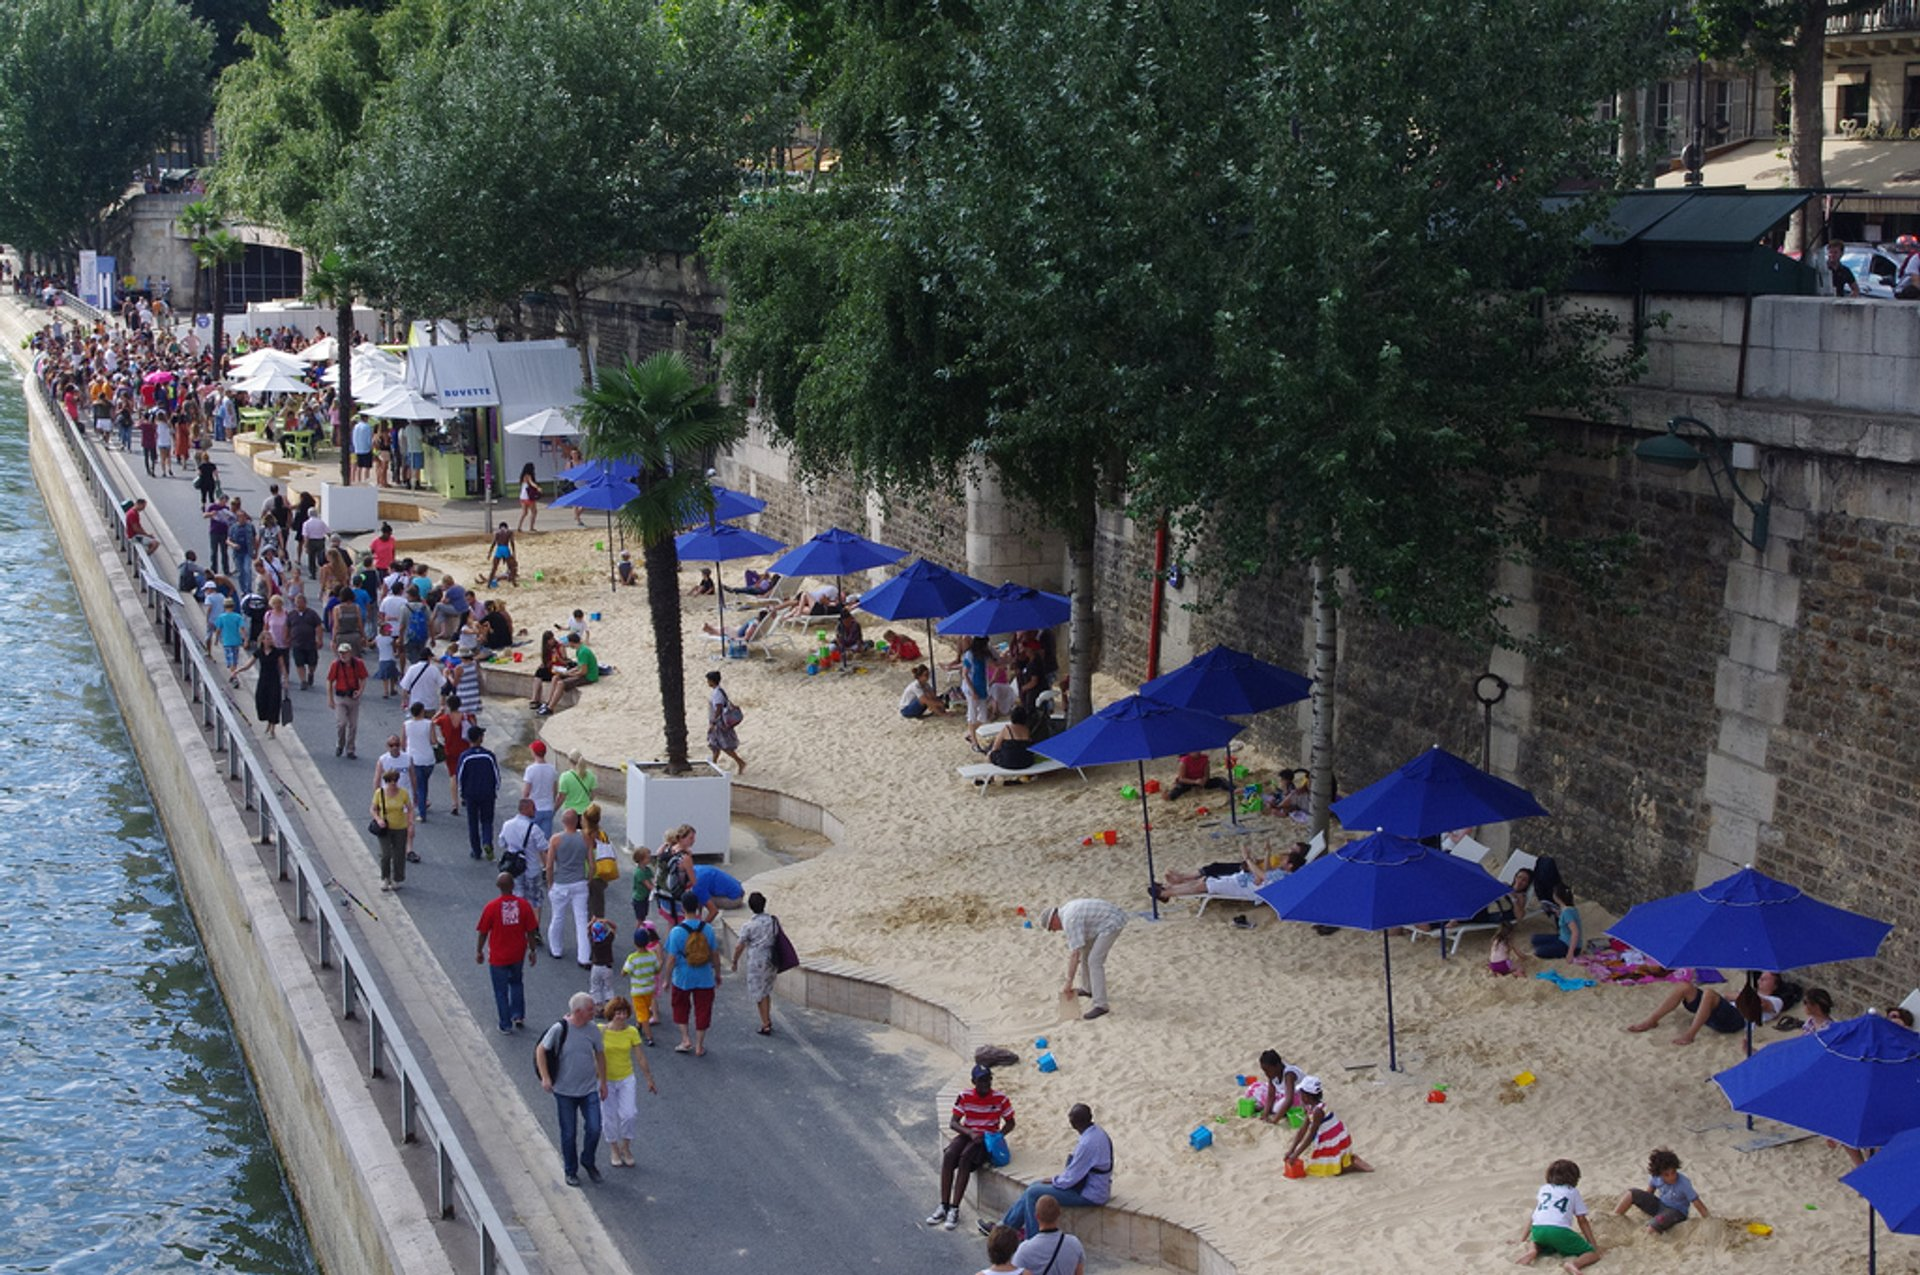 Best time to see Beaches on the Seine or Paris Plages in Paris 2020